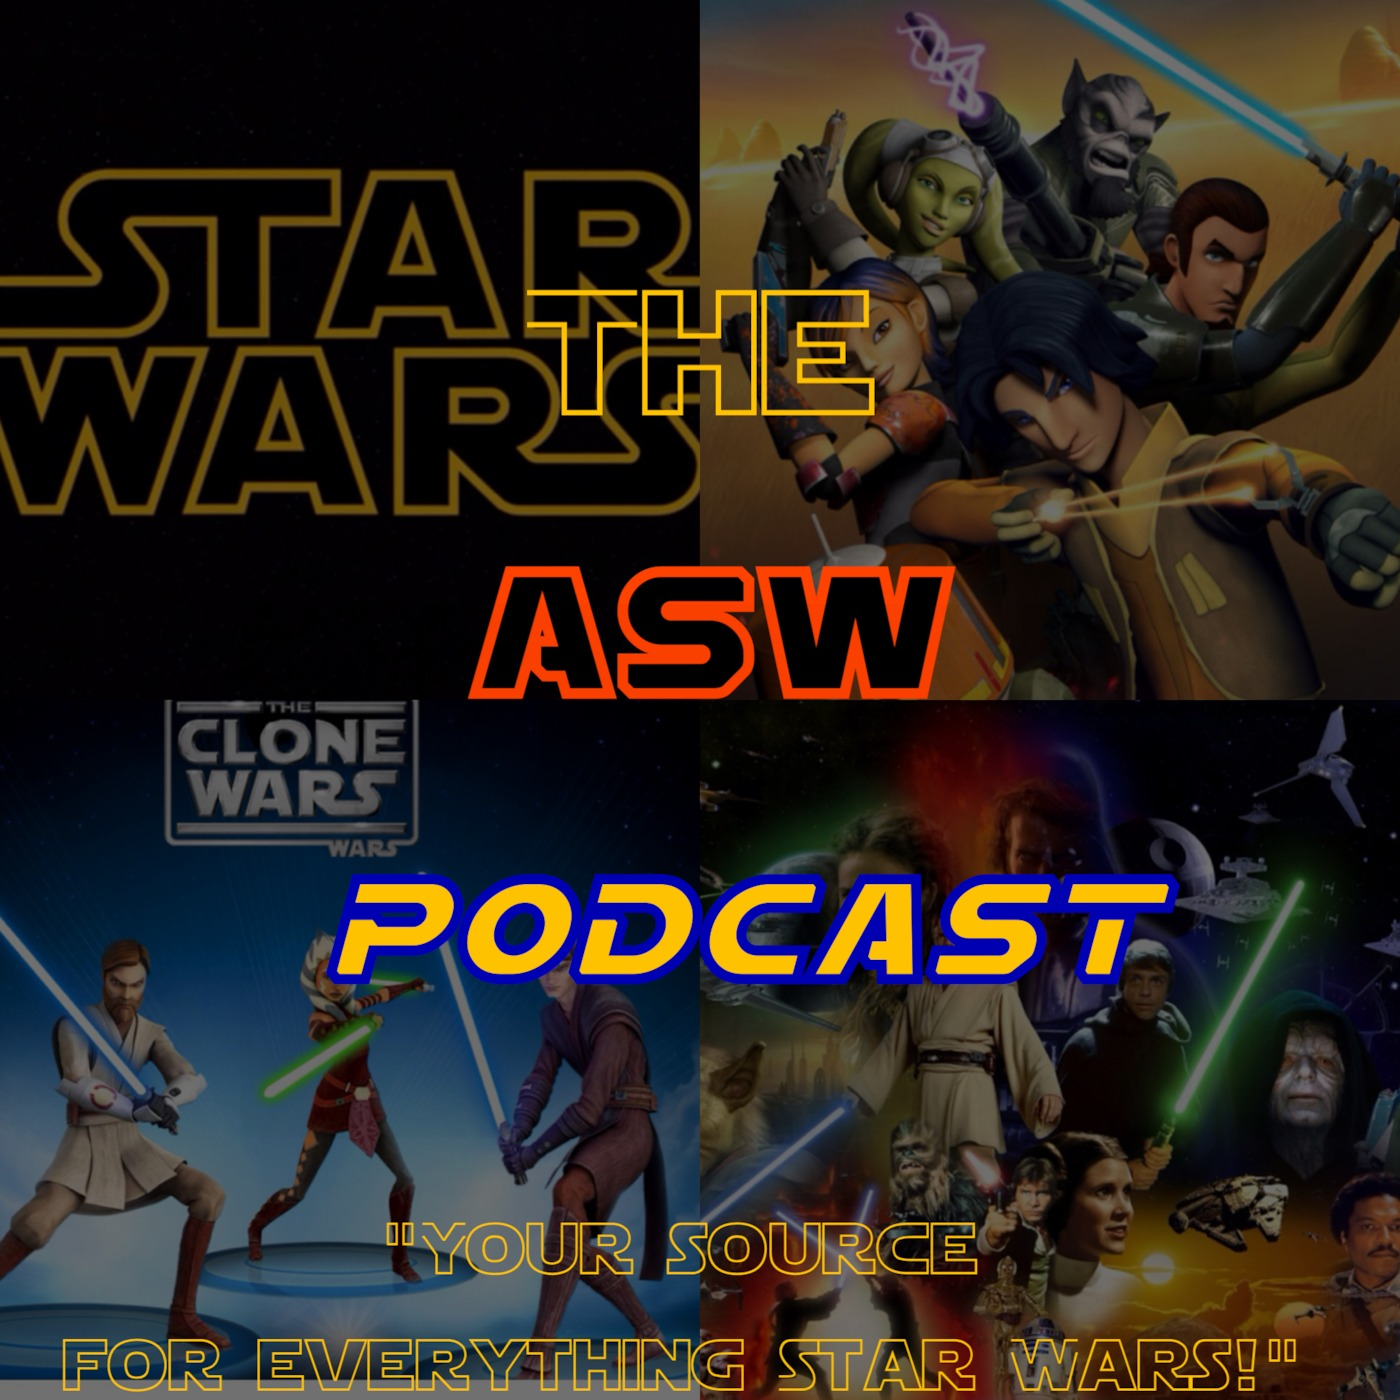 All_Star Wars Podcast